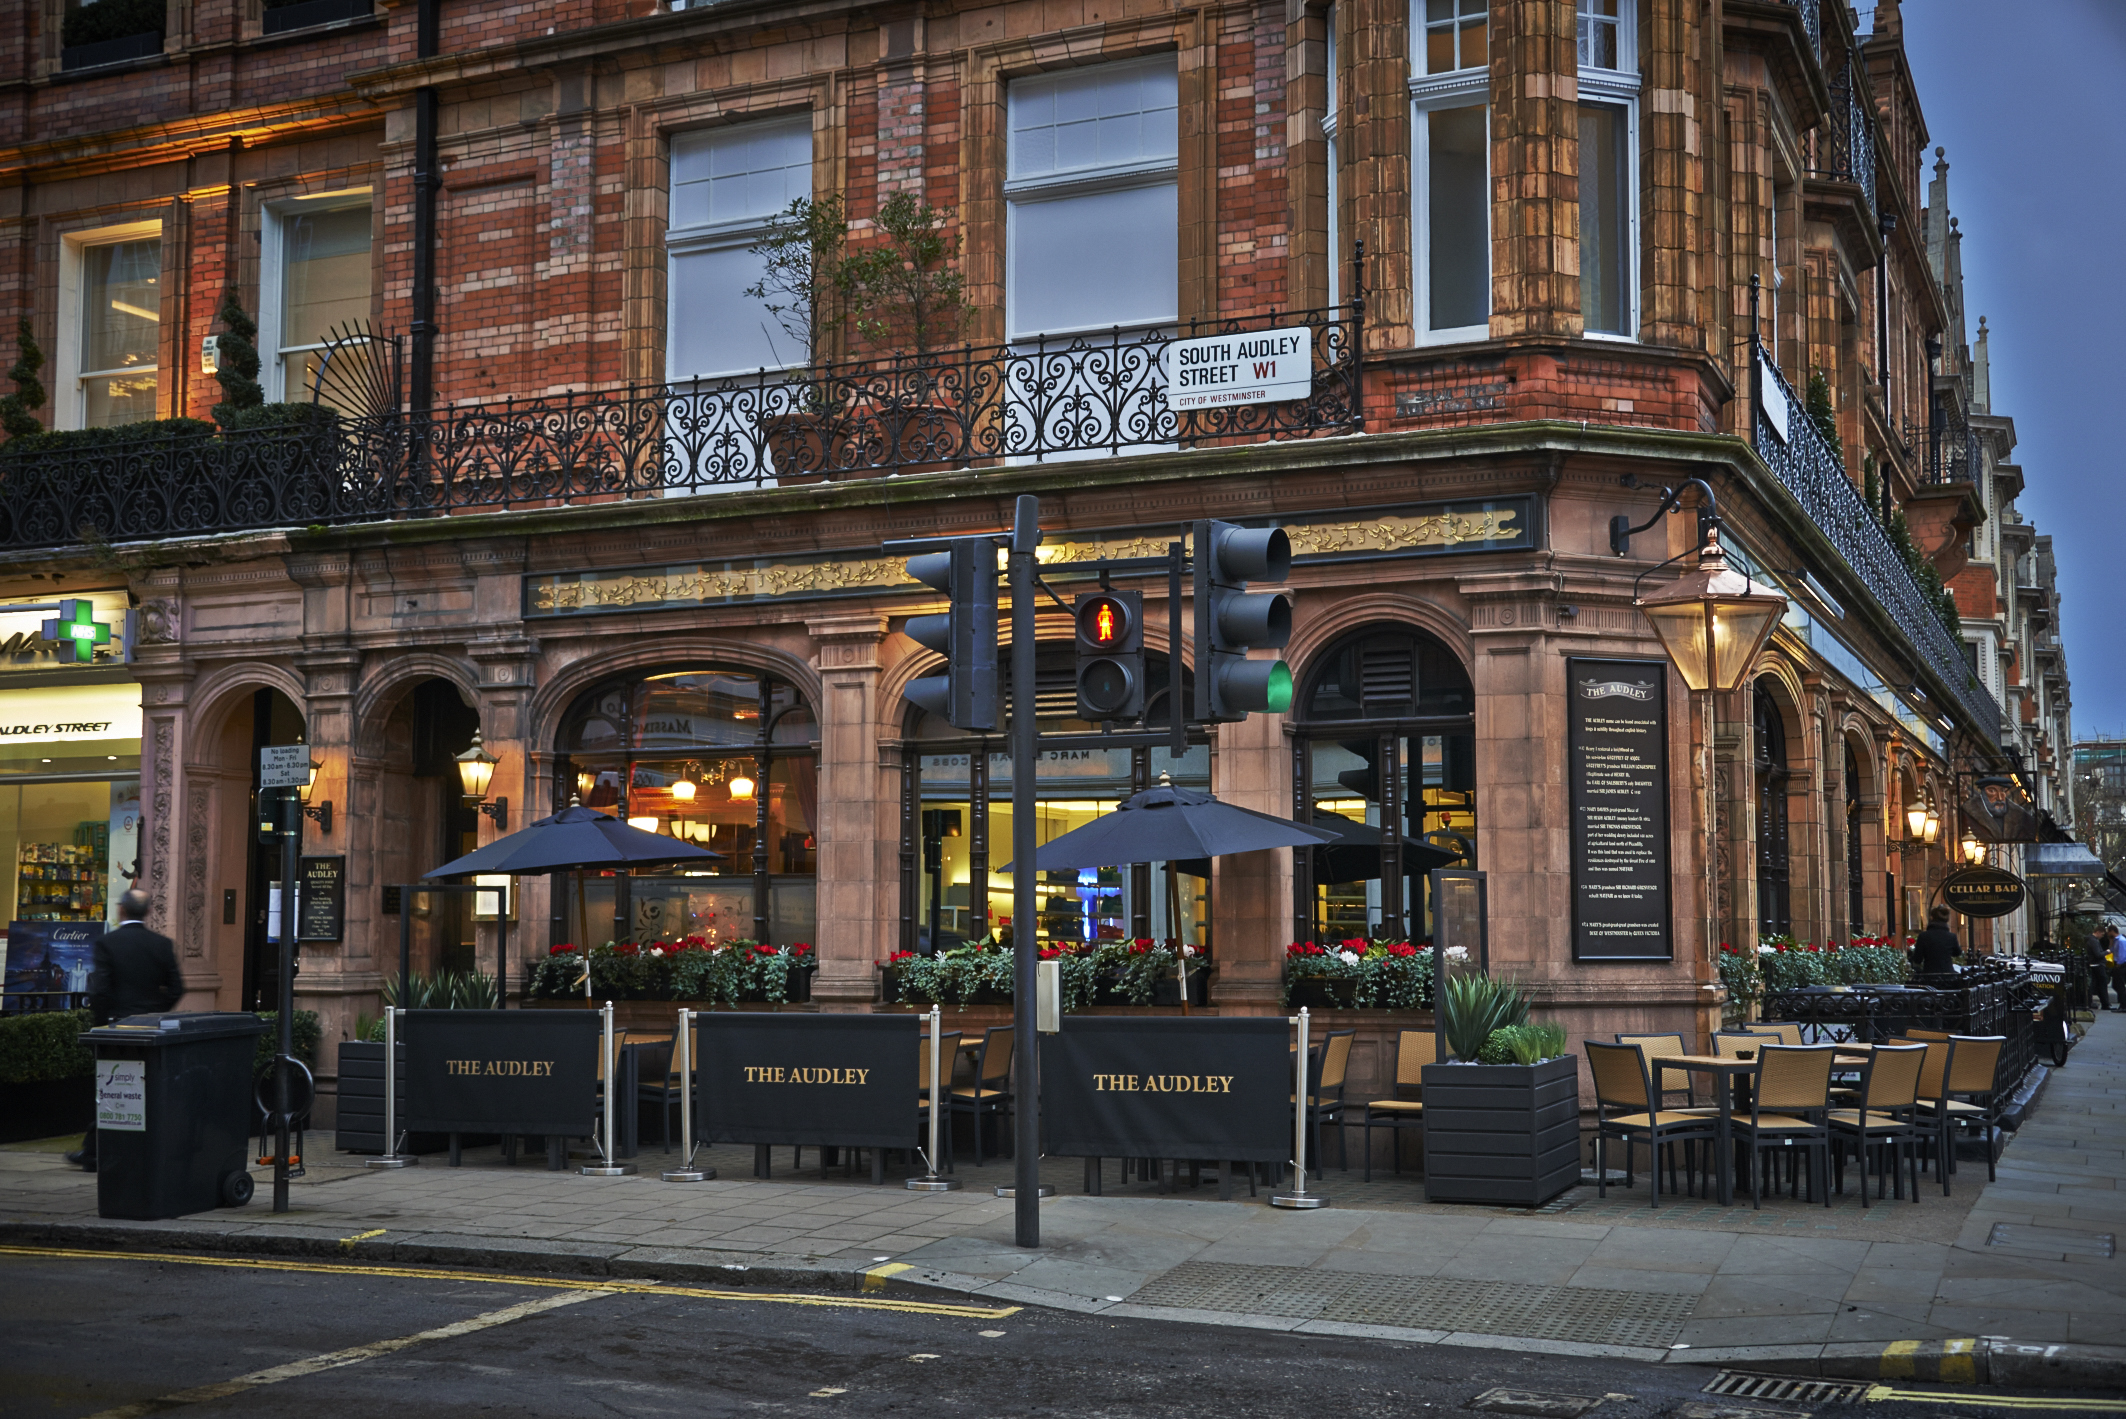 The Audley Mayfair